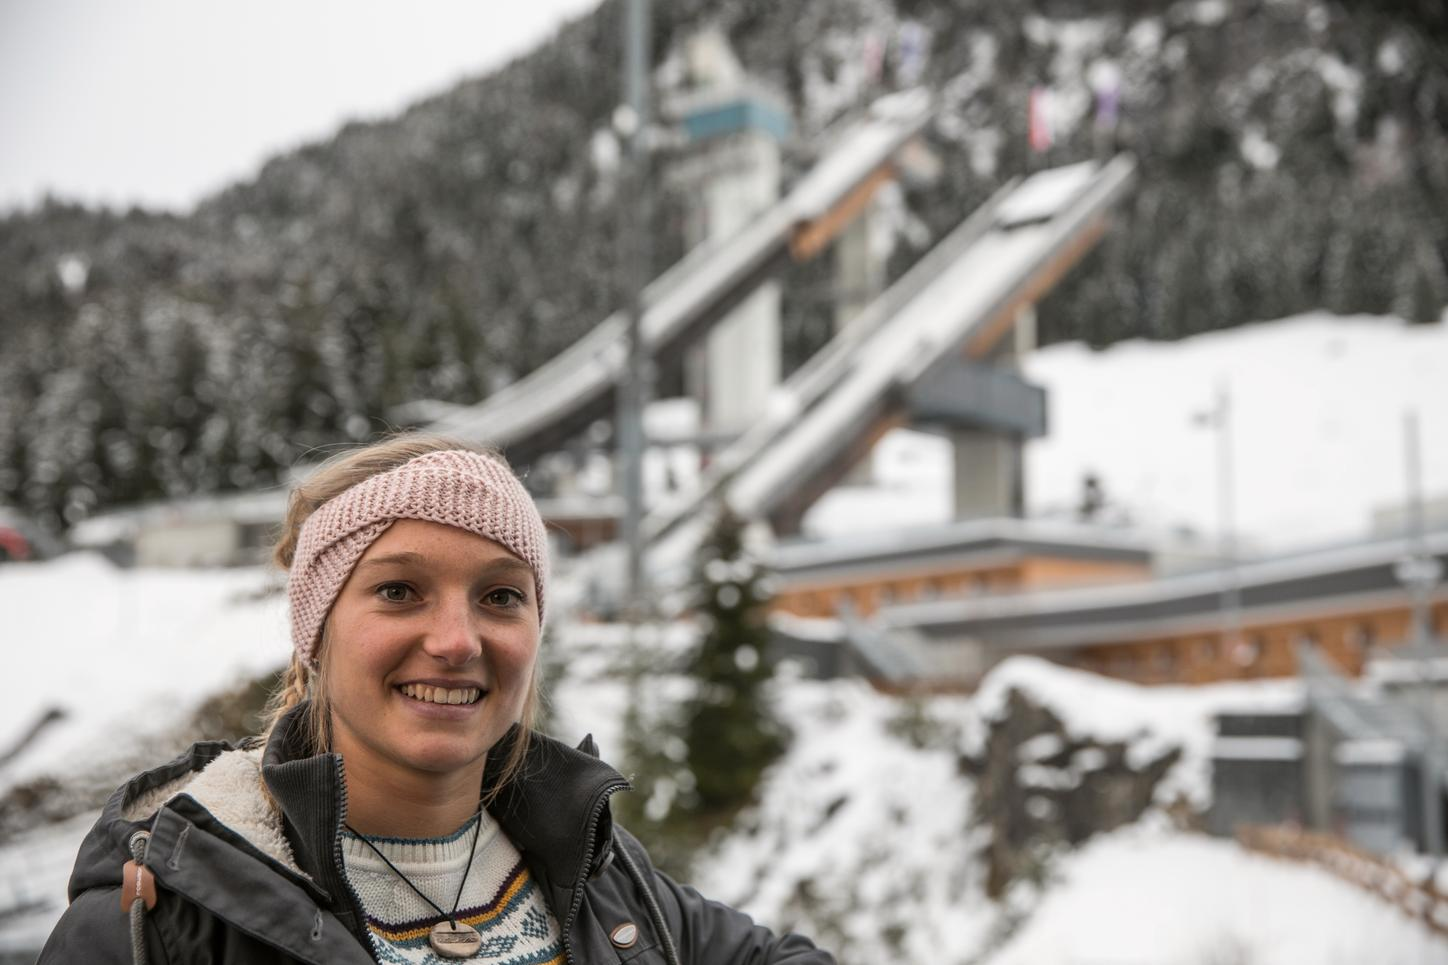 The picture shows the ski jumper Katharina Althaus in front of the jump in Oberstdorf